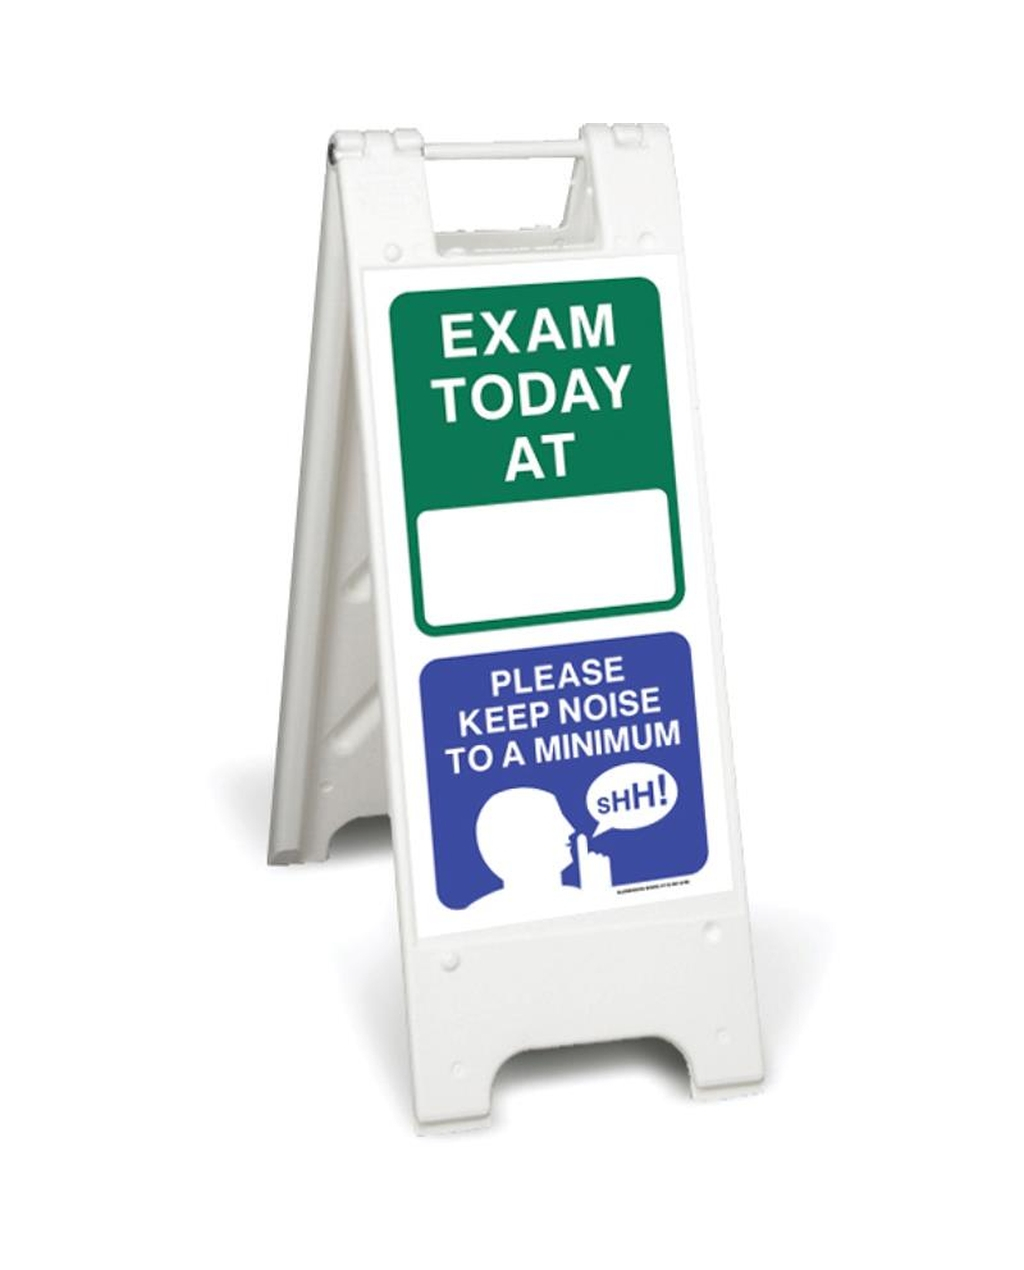 Exam today at ( blank box) - please keep noise to a minimum (mcd81)